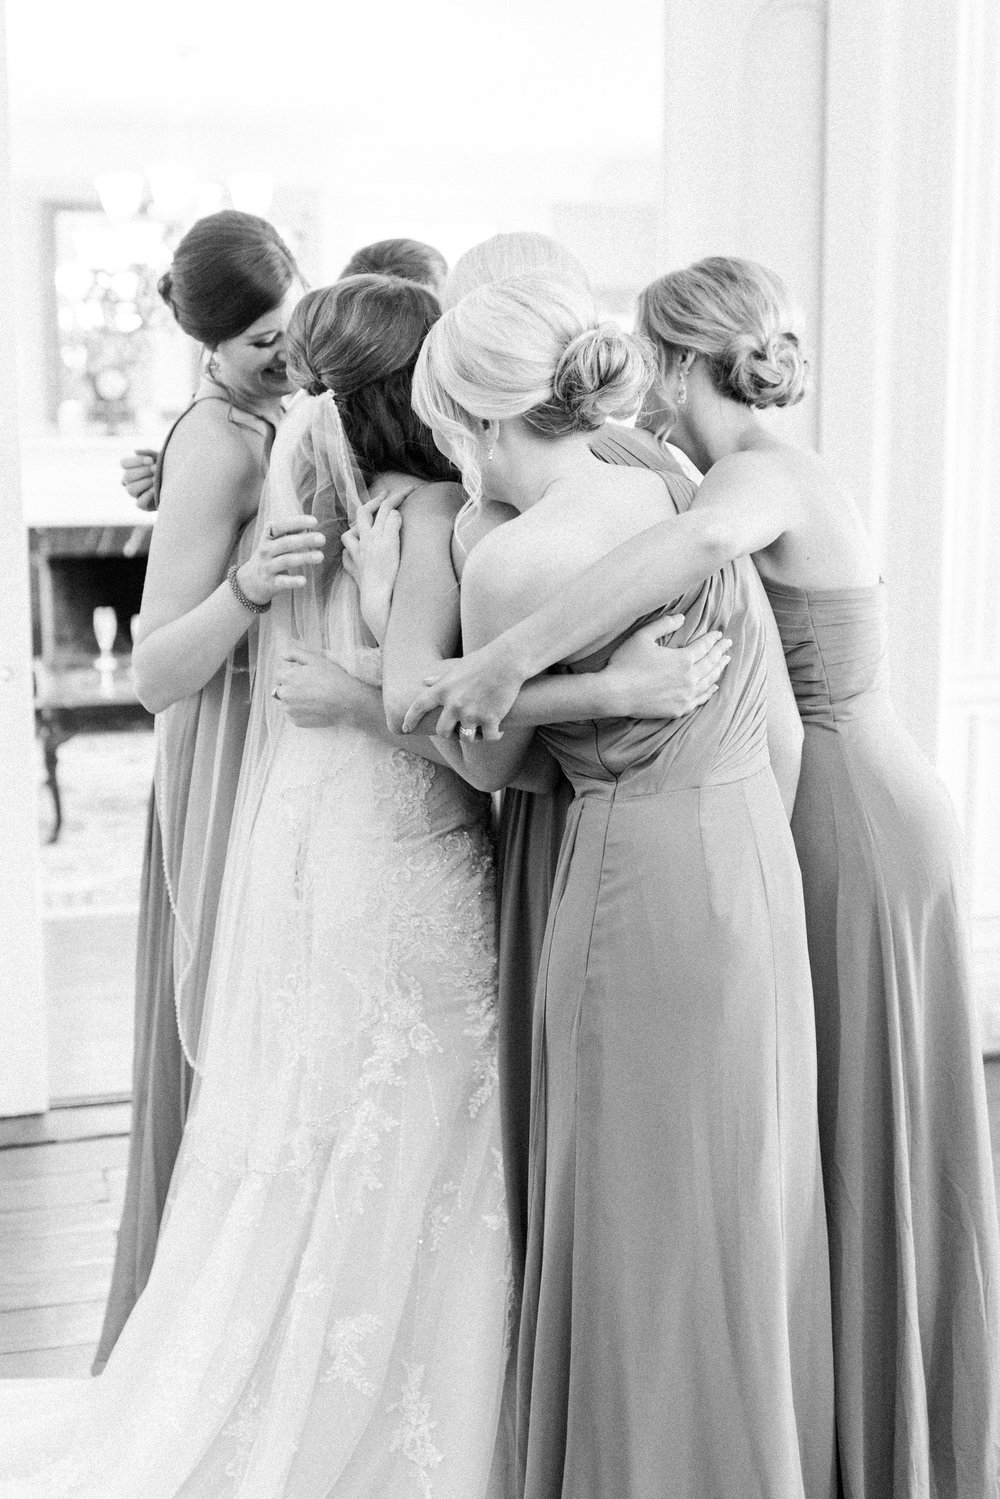 richwood-on-the-river bridemaids hug.jpg